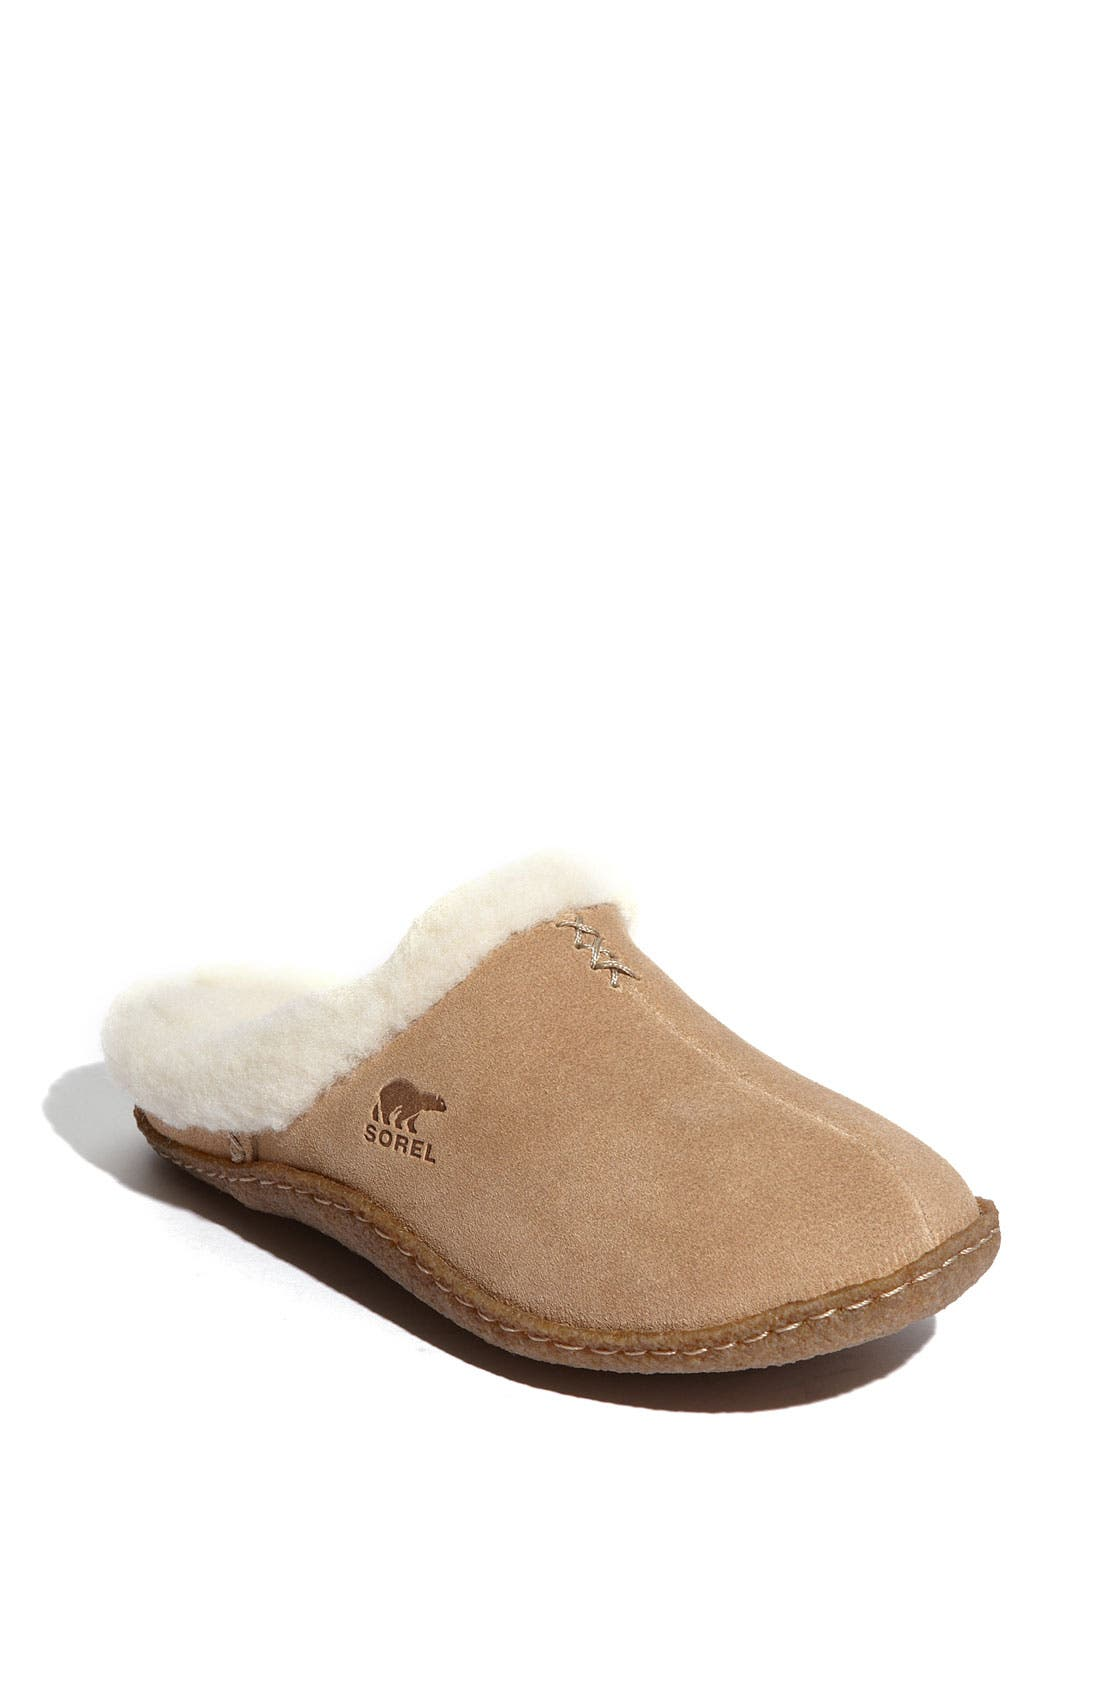 Main Image - SOREL 'Nakiska' Slipper